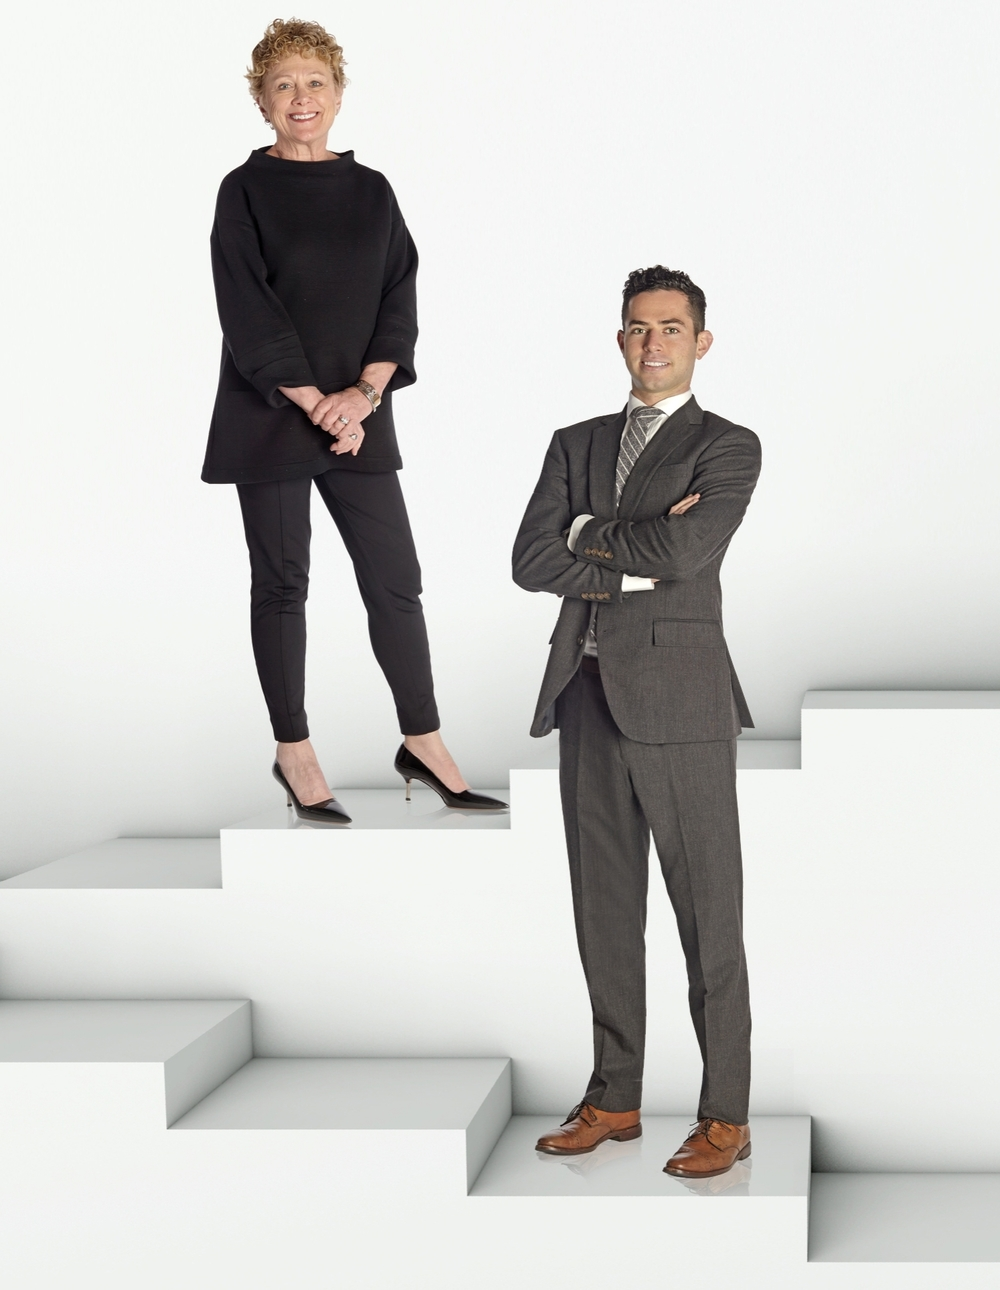 Caroline Kahn Werboff & David Werboff of Sotheby's International Realty